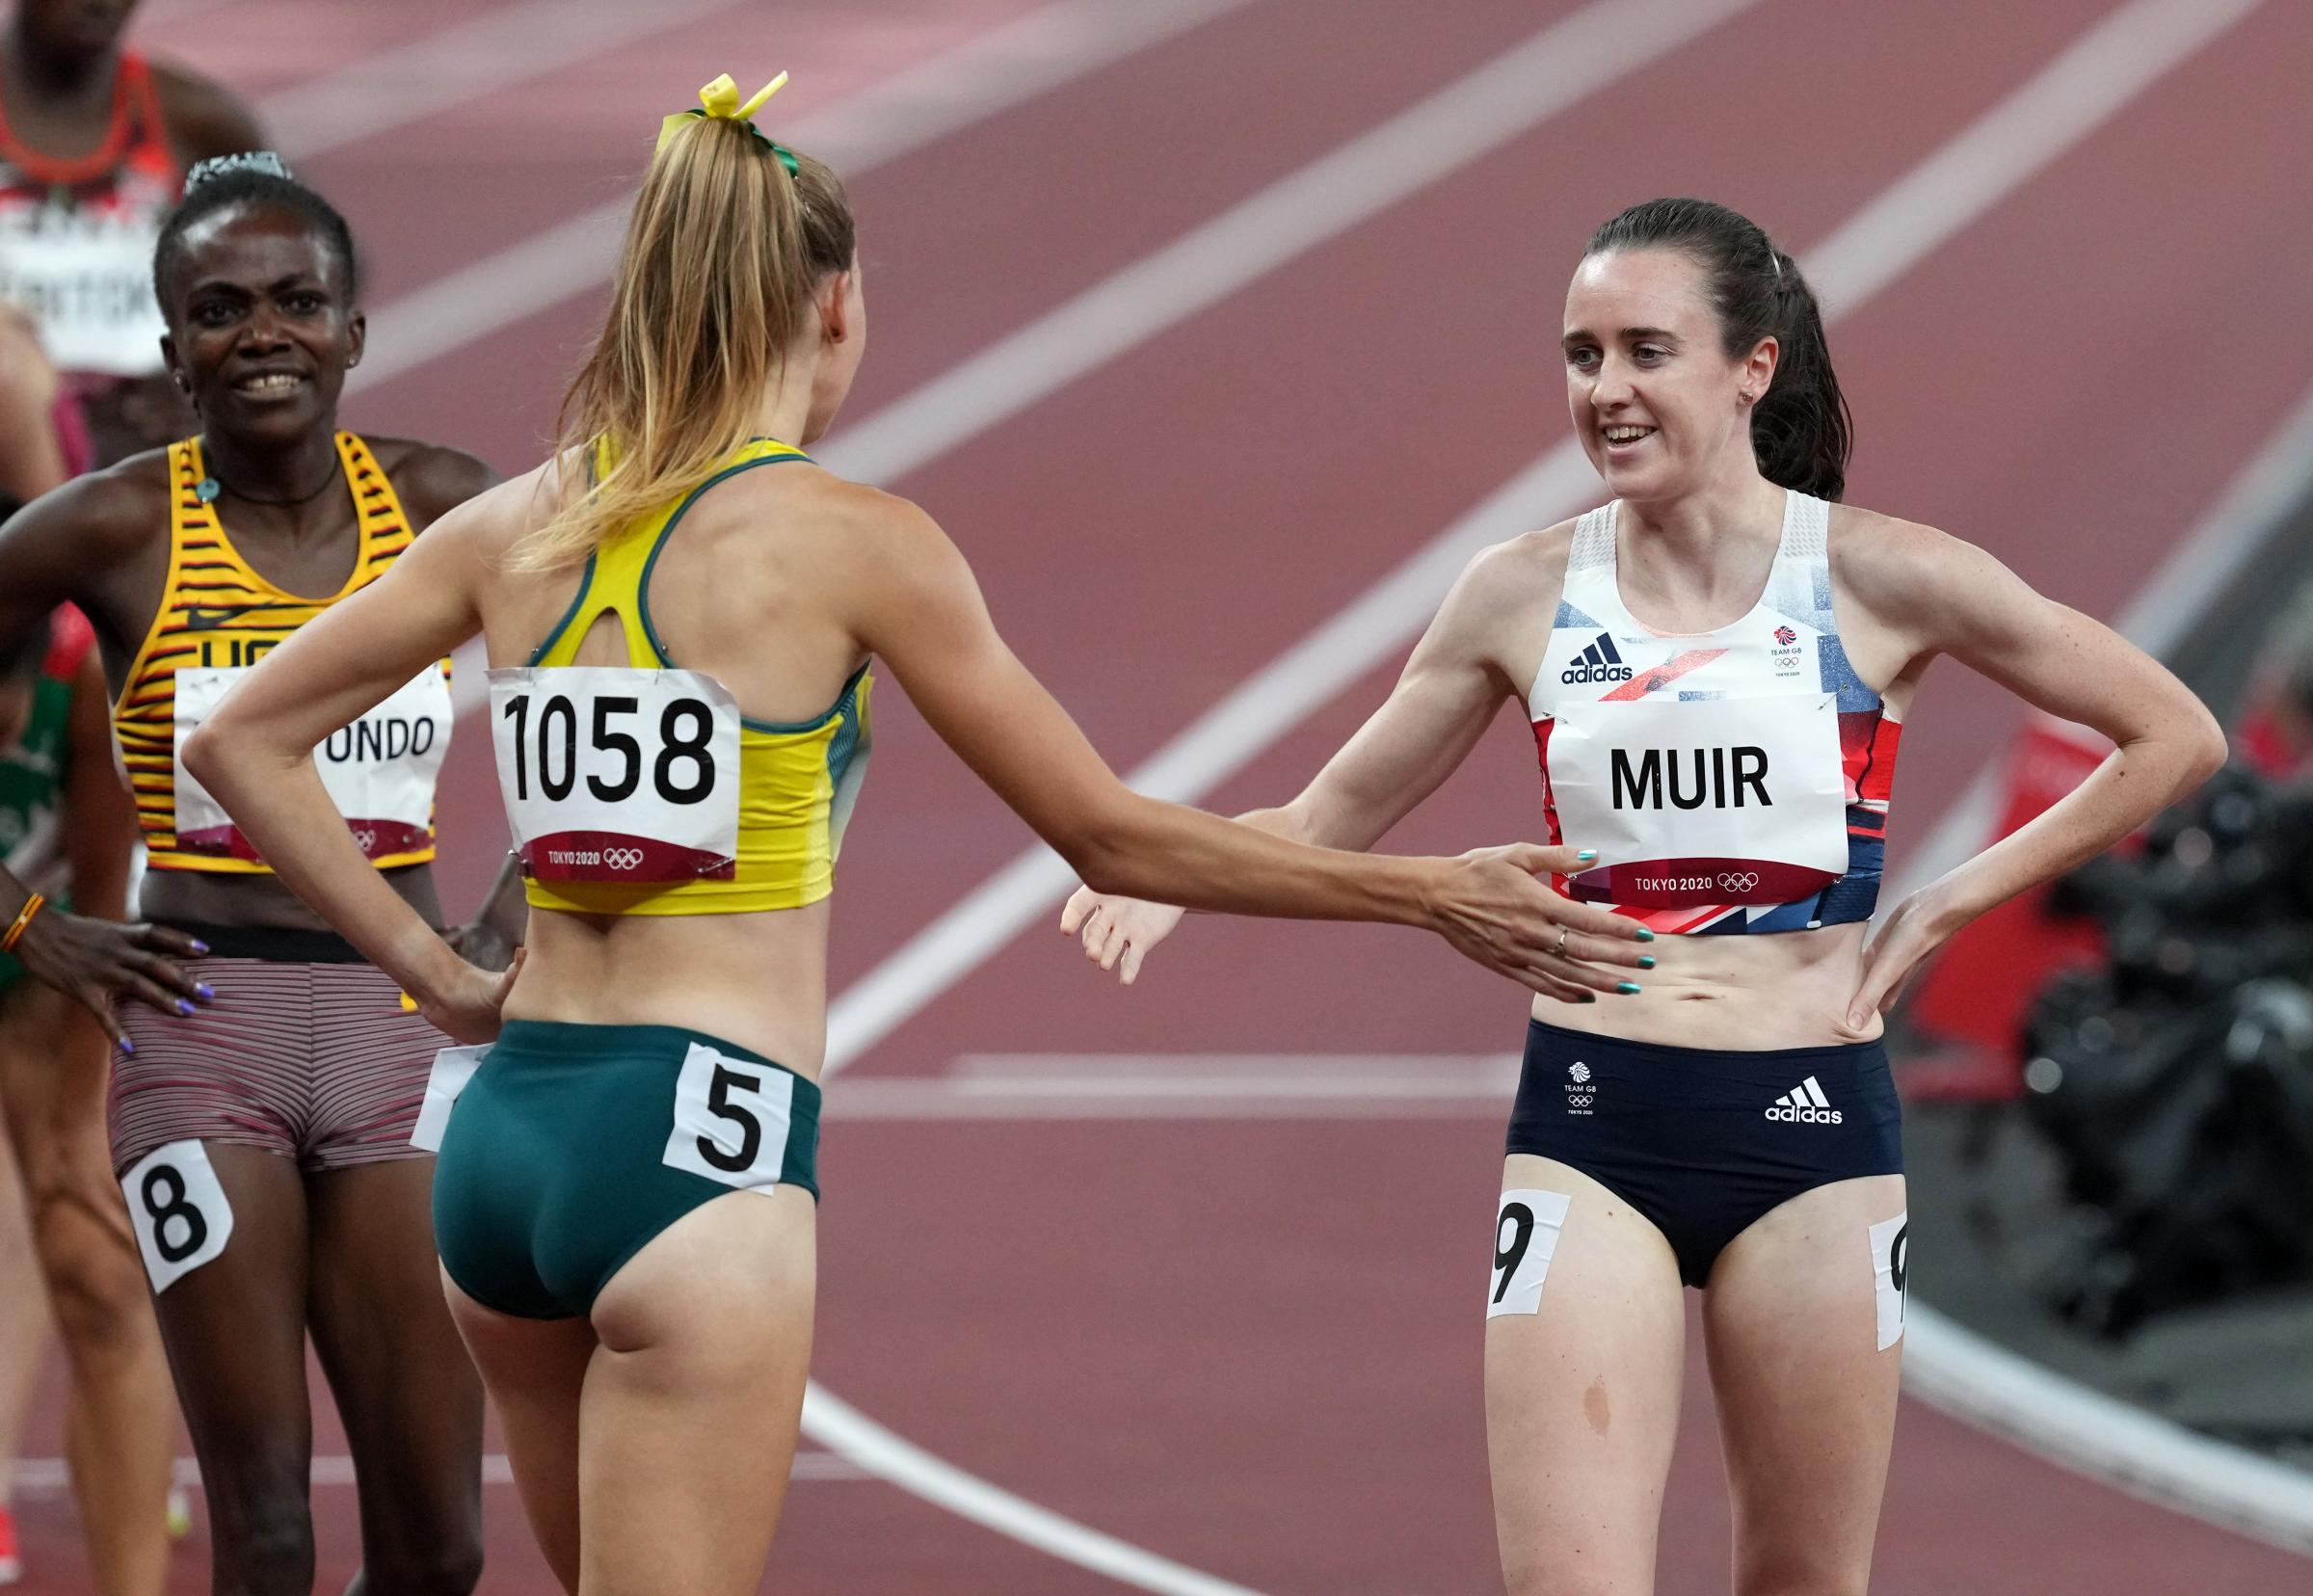 Tokyo Olympics: Laura Muri fully focussed on 1500m final after 'tough' semi-final run